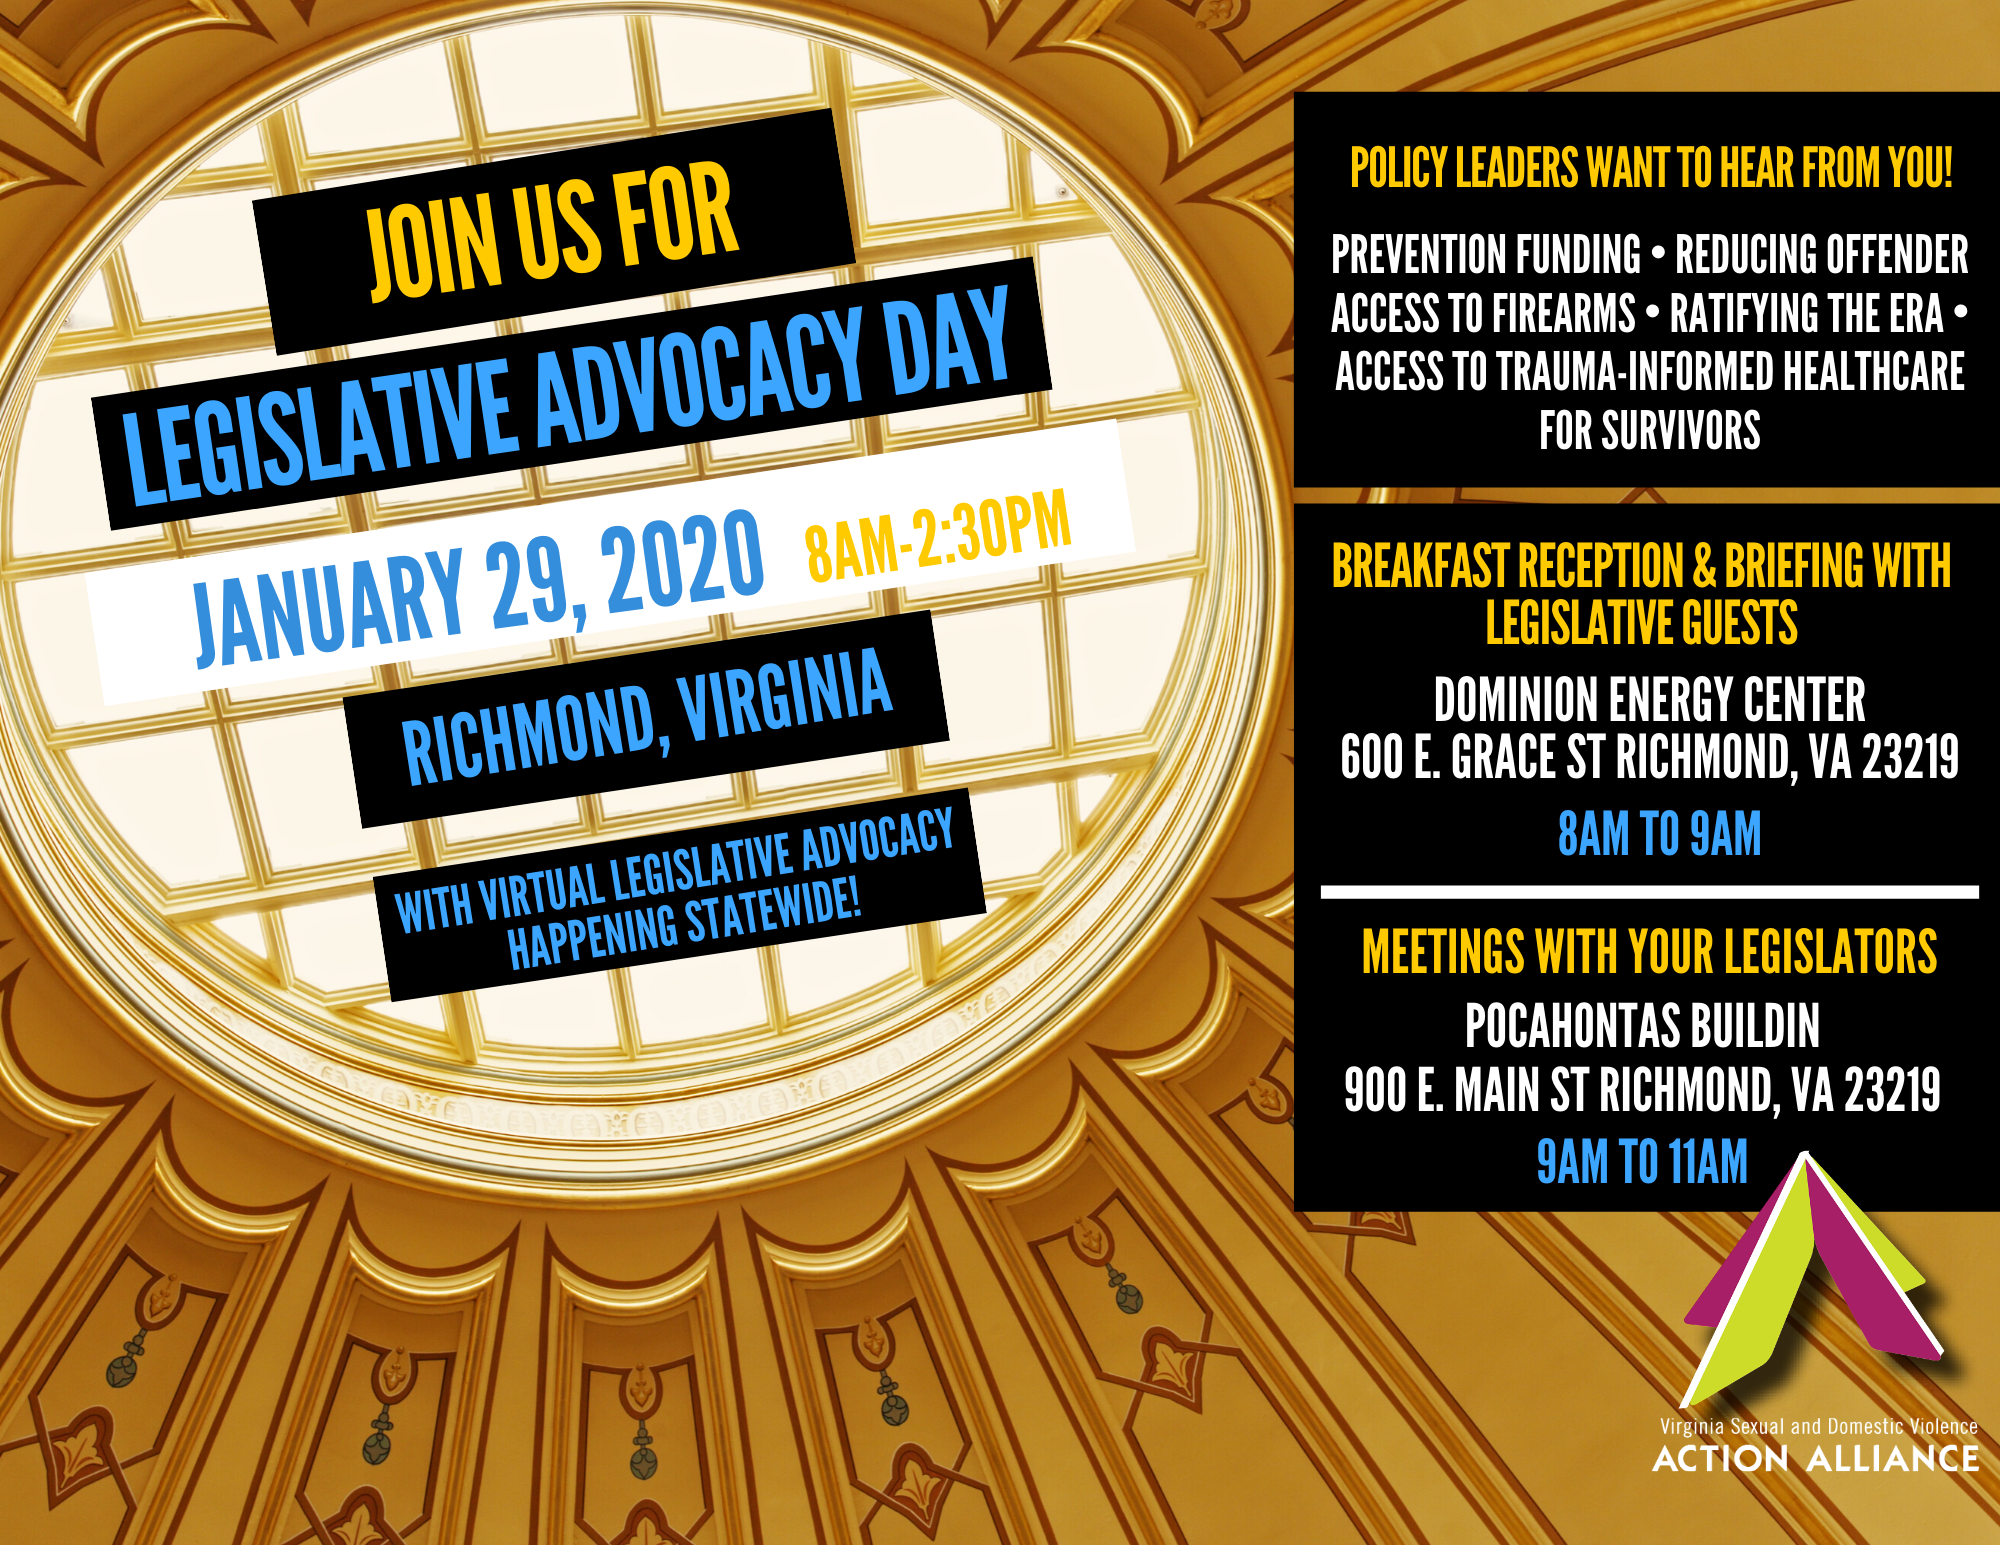 "Looking up at a skylight dome of an ornately decorated hall overlaid with text: ""Join us for Legislative Advocacy Day, January 29, 2020, 8am-2:30pm, Richmond, VA, with virtual legislative advocacy happening statewide!"""